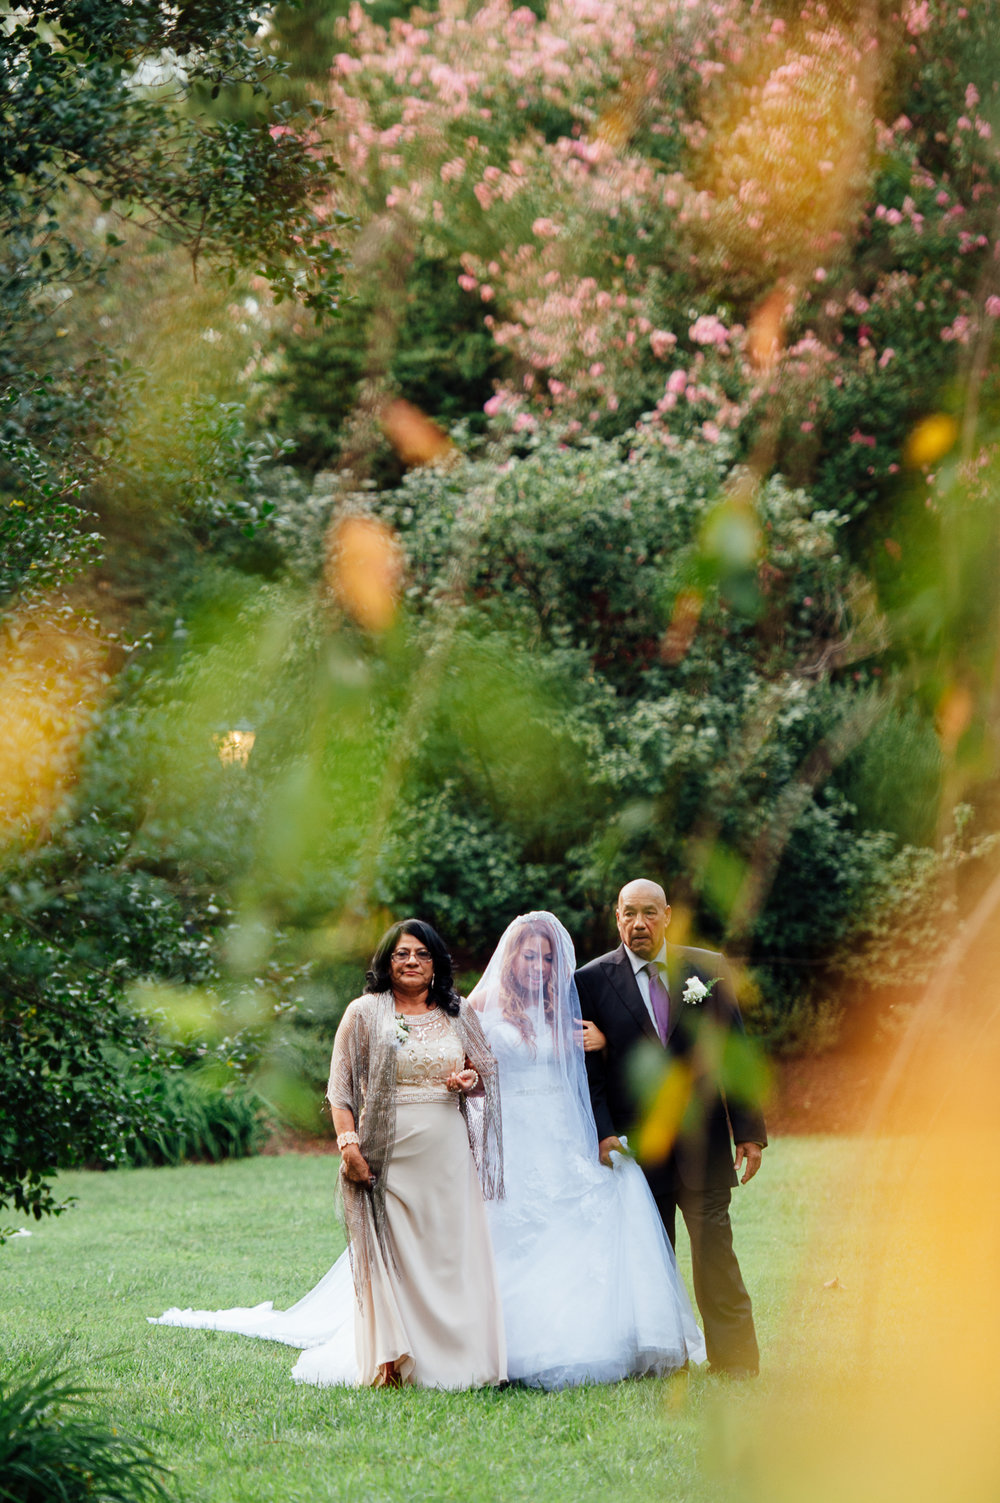 virginiawedding_LewisGinter_youseephotography_FarrinDaniel(10a).jpg